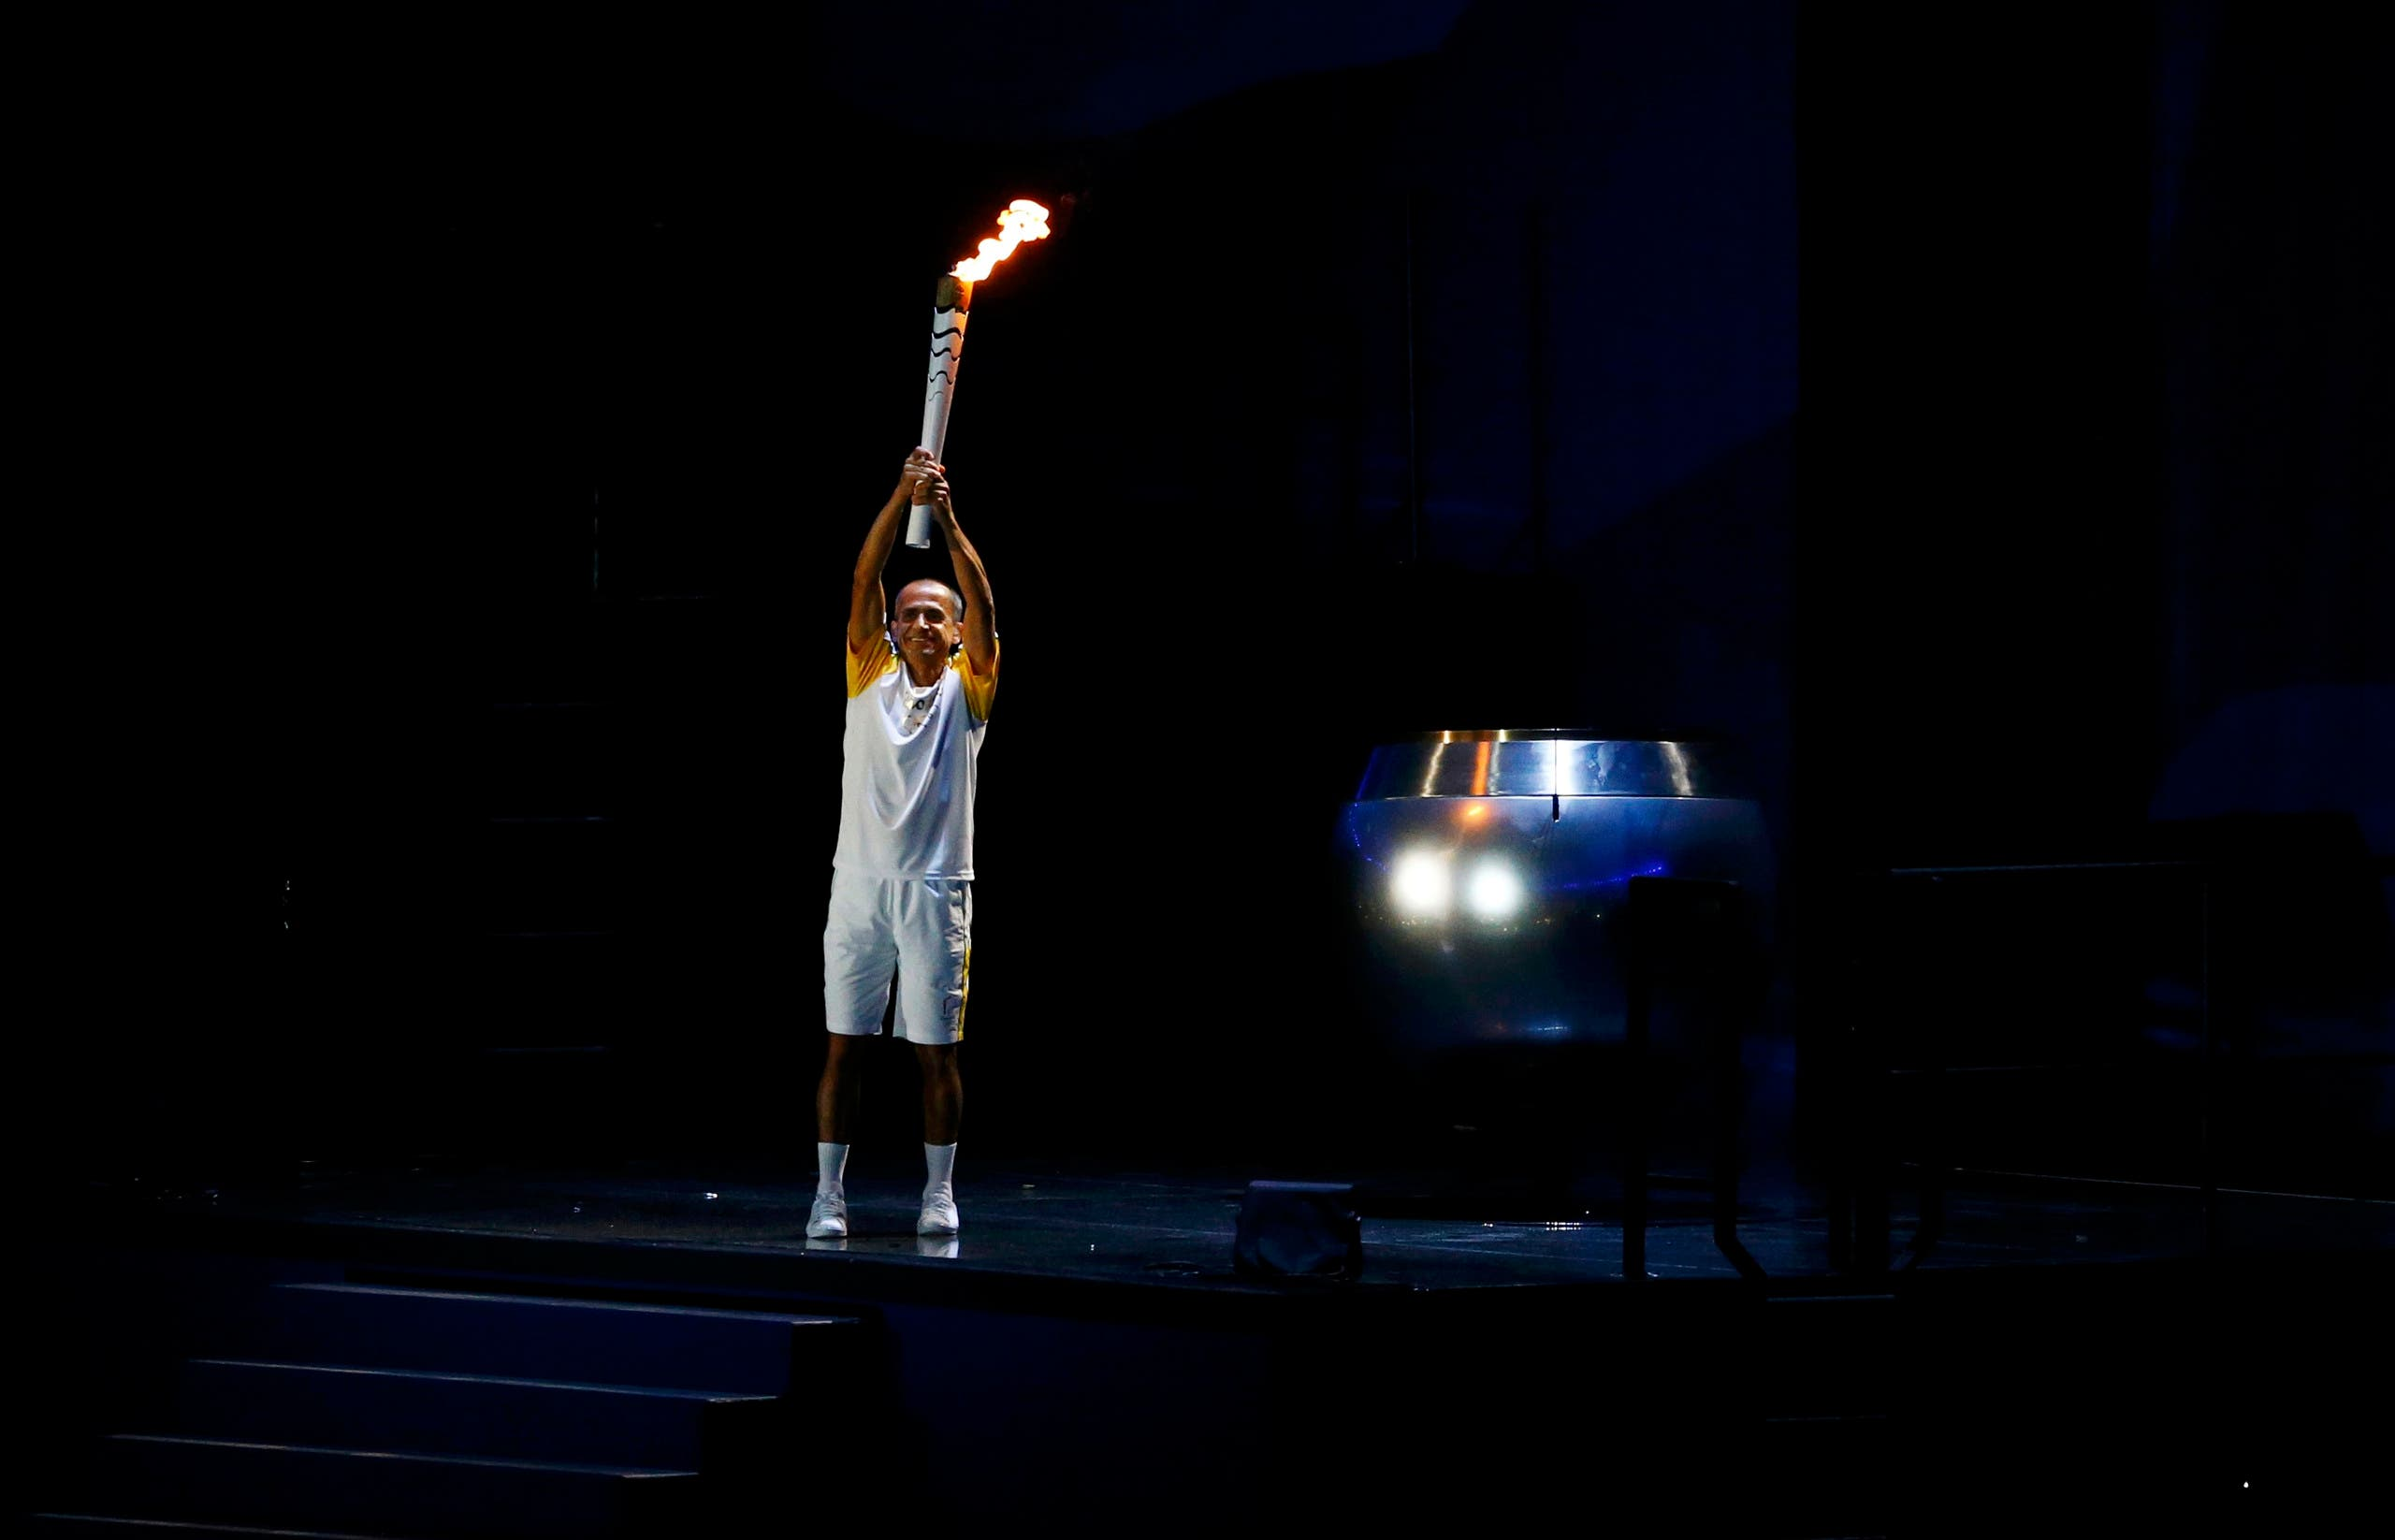 Former Brazilian marathon runner Vanderlei Cordeiro de Lima holds the Olympic torch before lighting the Olympic cauldron at the opening ceremony. REUTERS